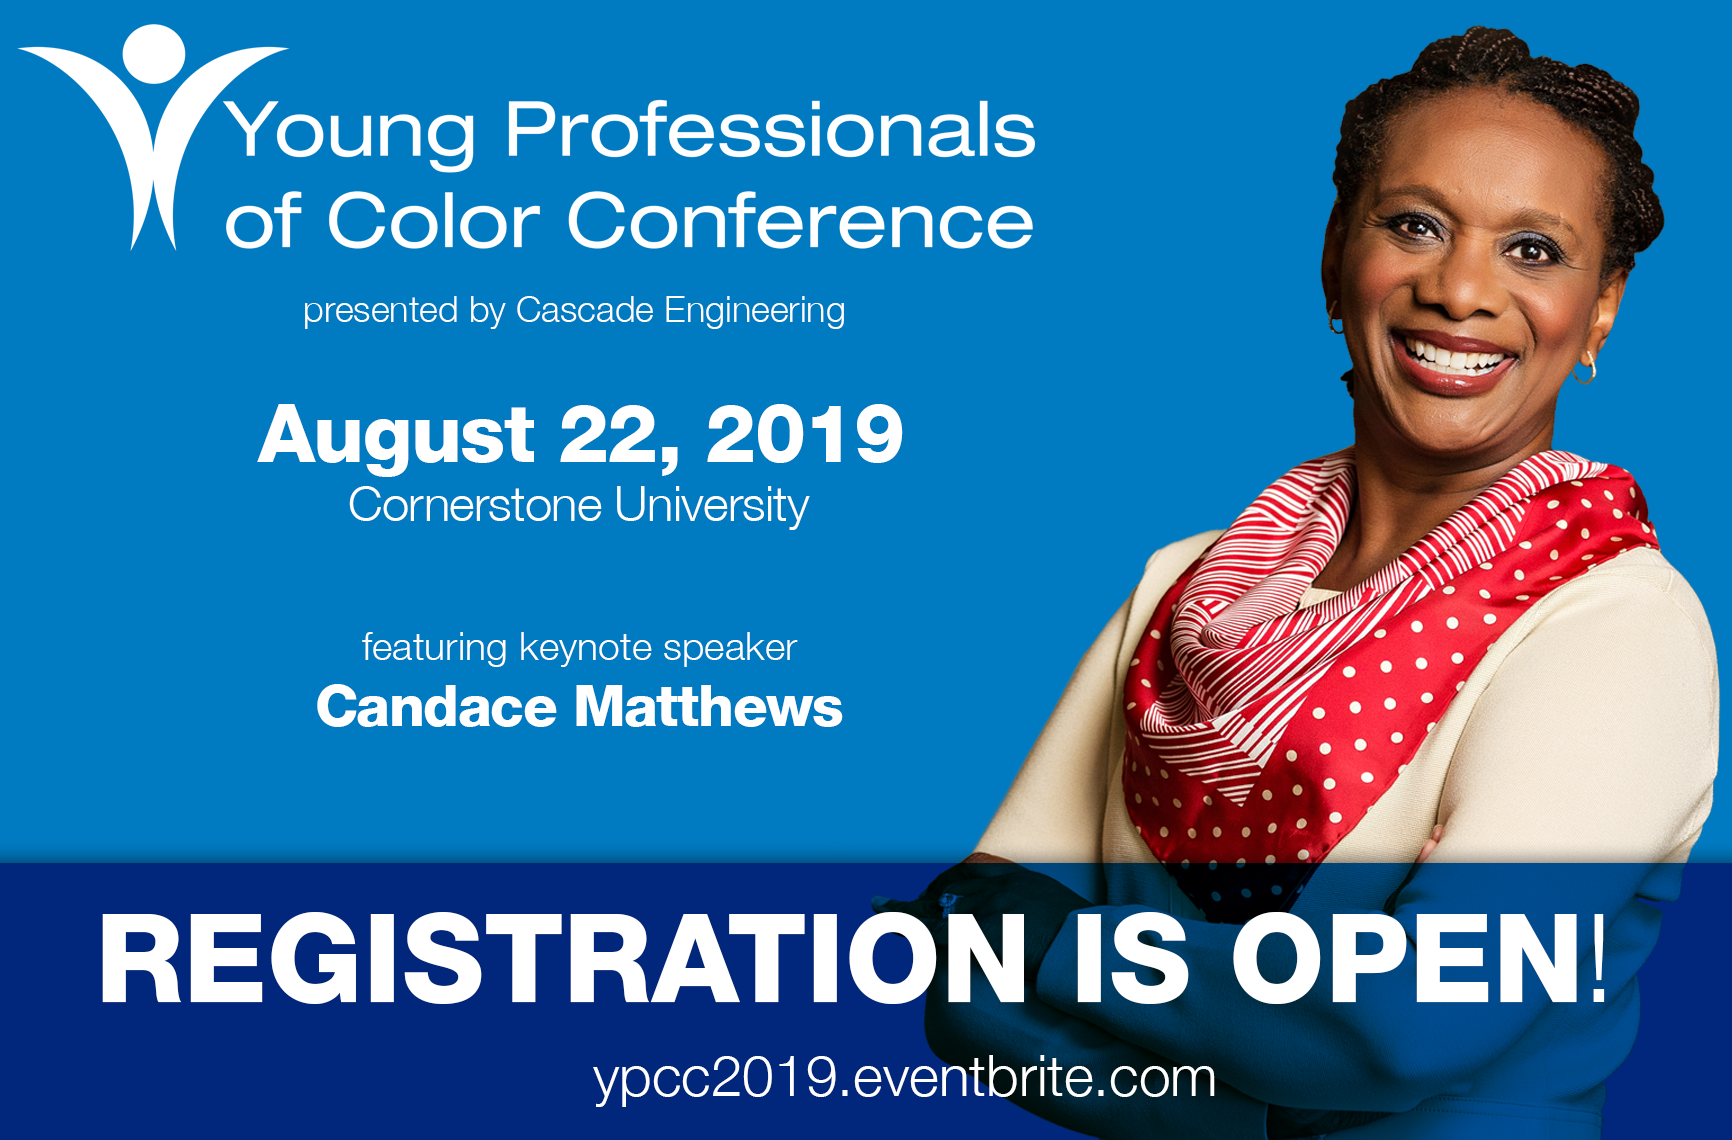 YPCC 2019 | Young Professionals of Color Conference